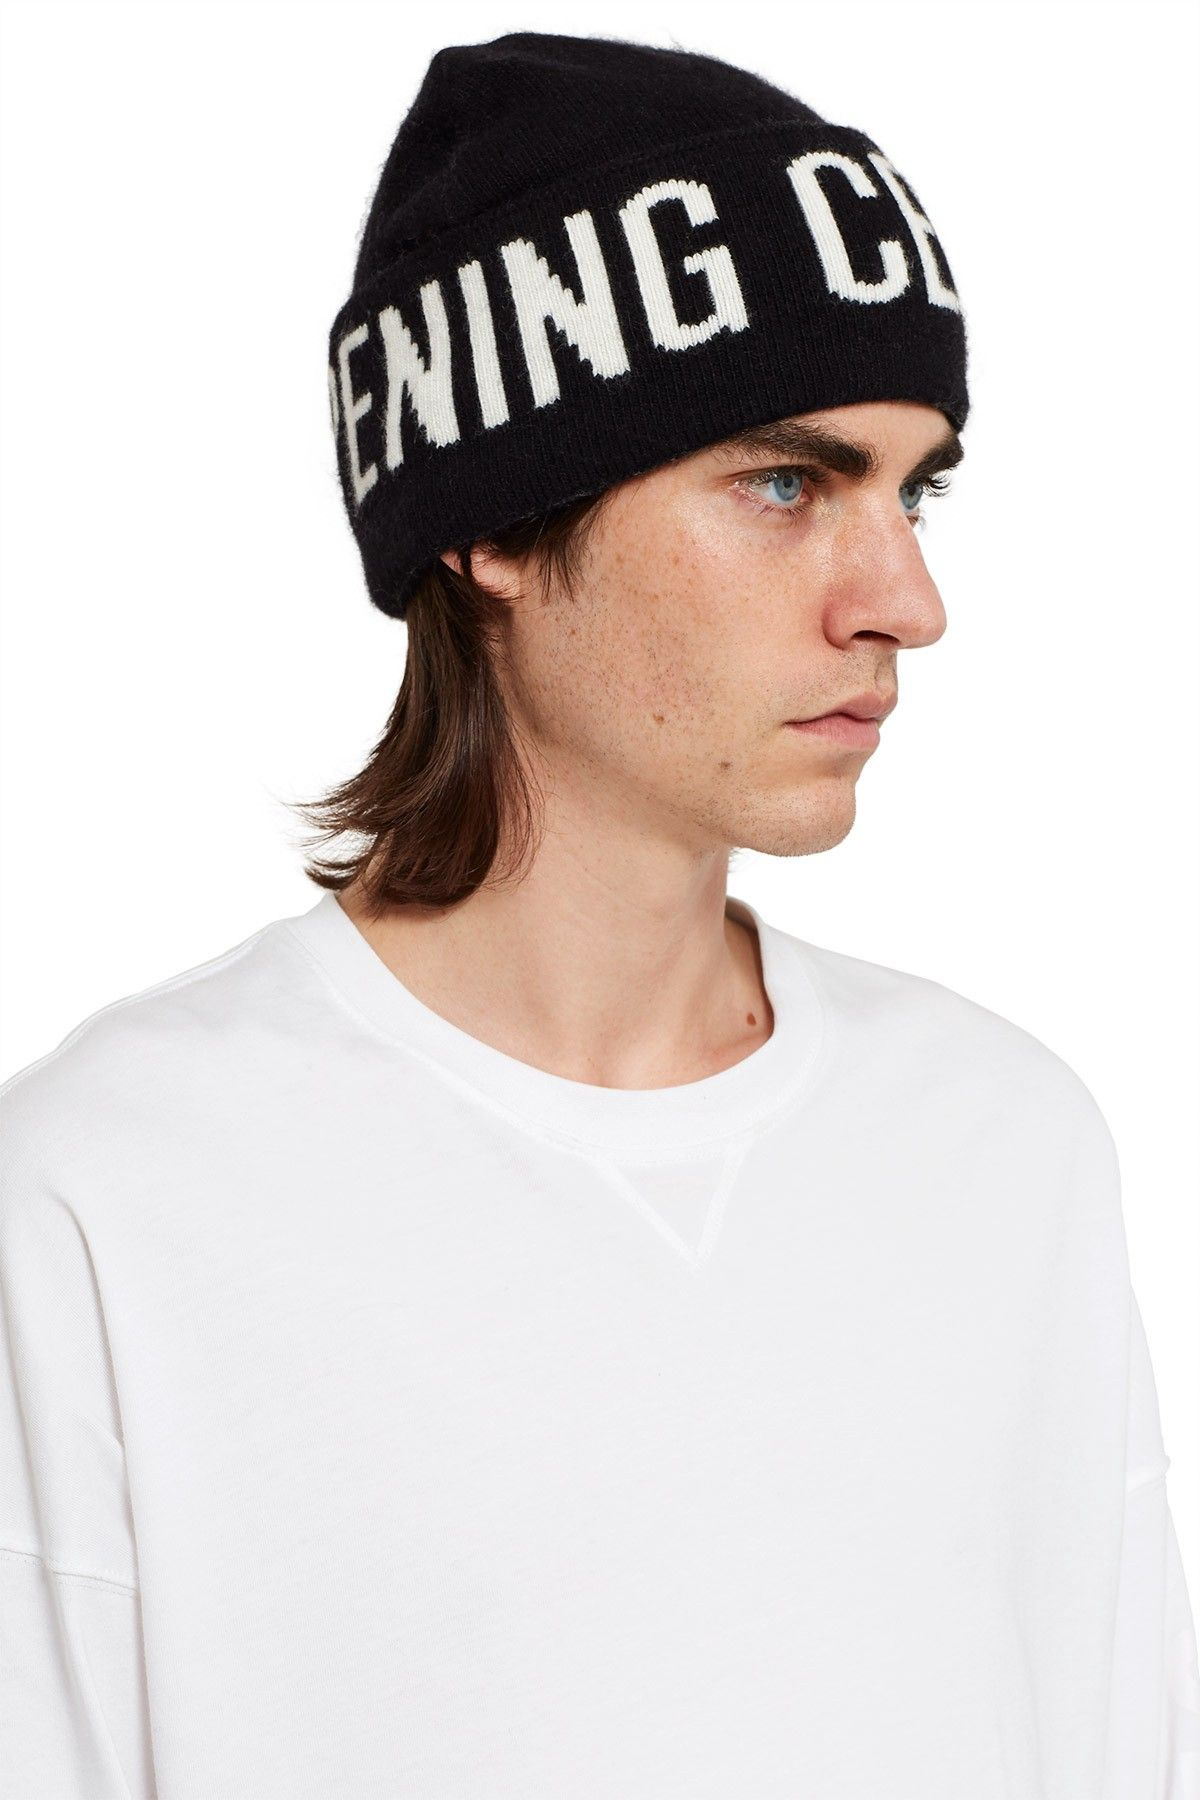 af00a0bd73d OPENING CEREMONY LOGO BEANIE - BLACK.  openingceremony